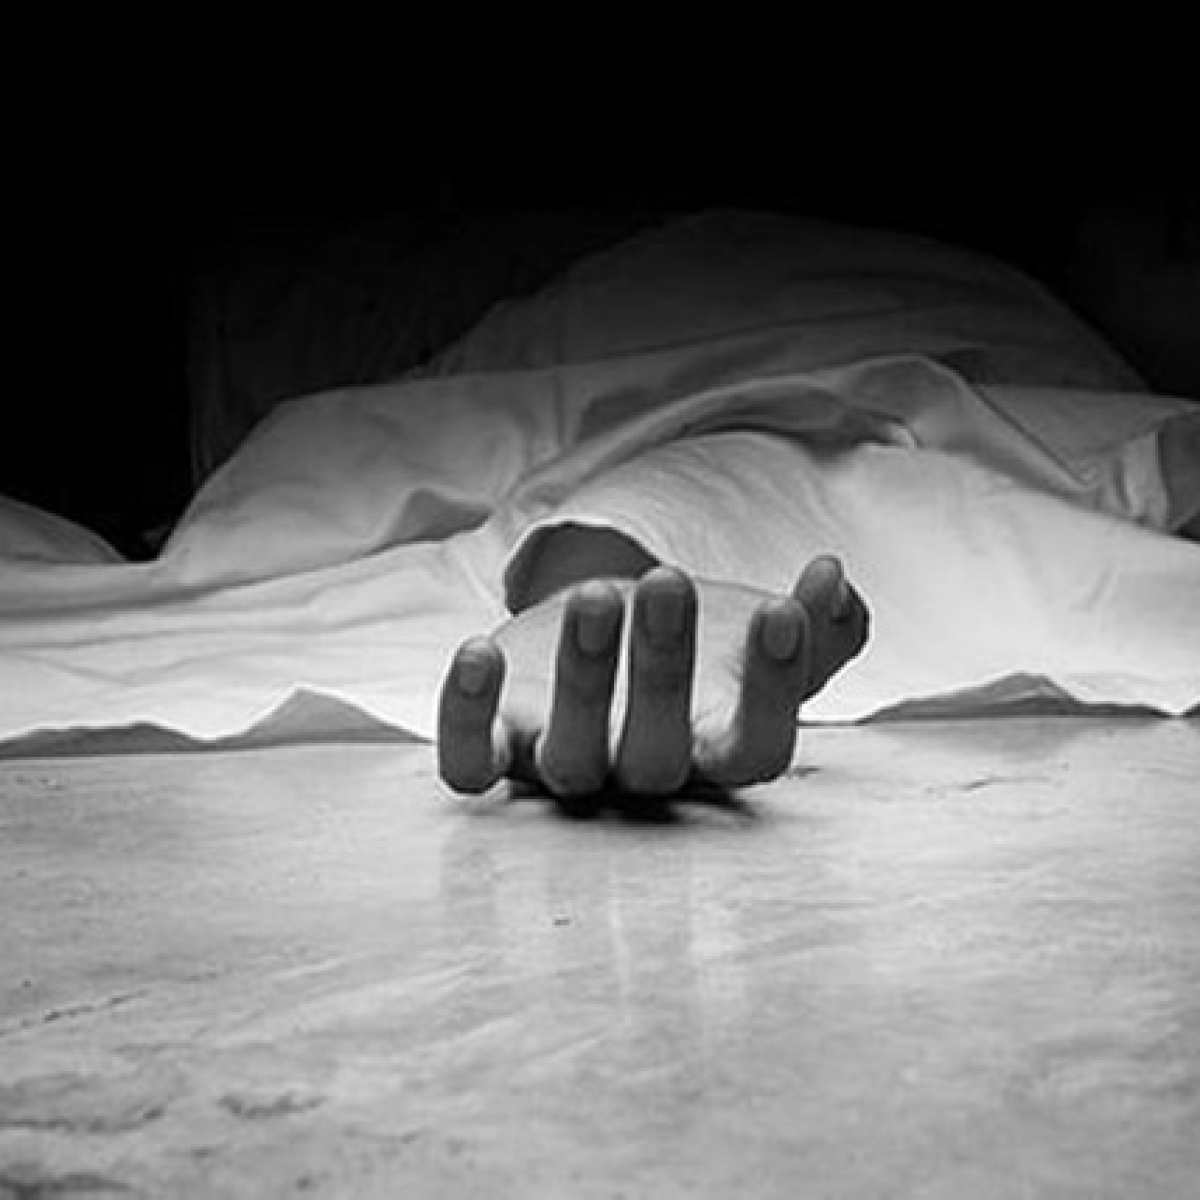 Mumbai Crime: 63-year-old woman stabbed to death in Virar flat